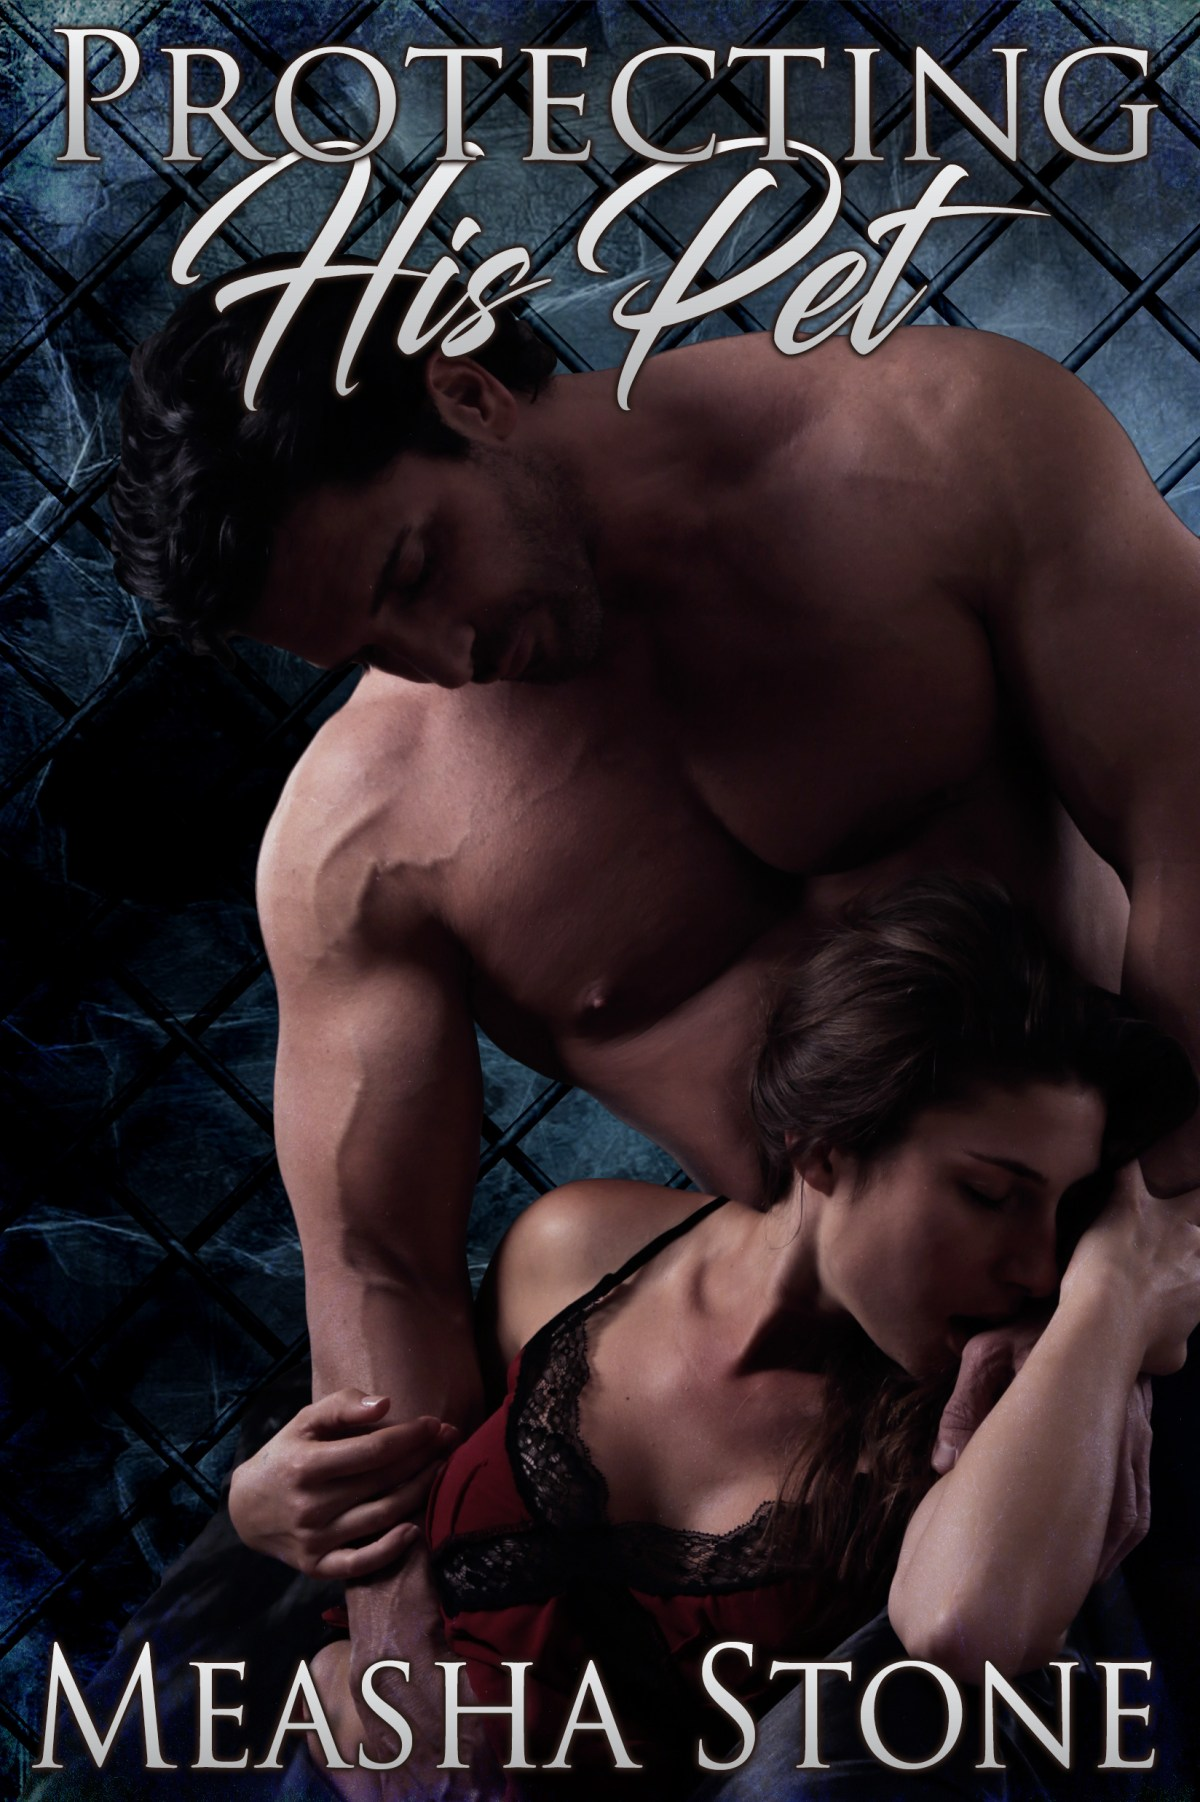 Protecting His Pet by Measha Stone.